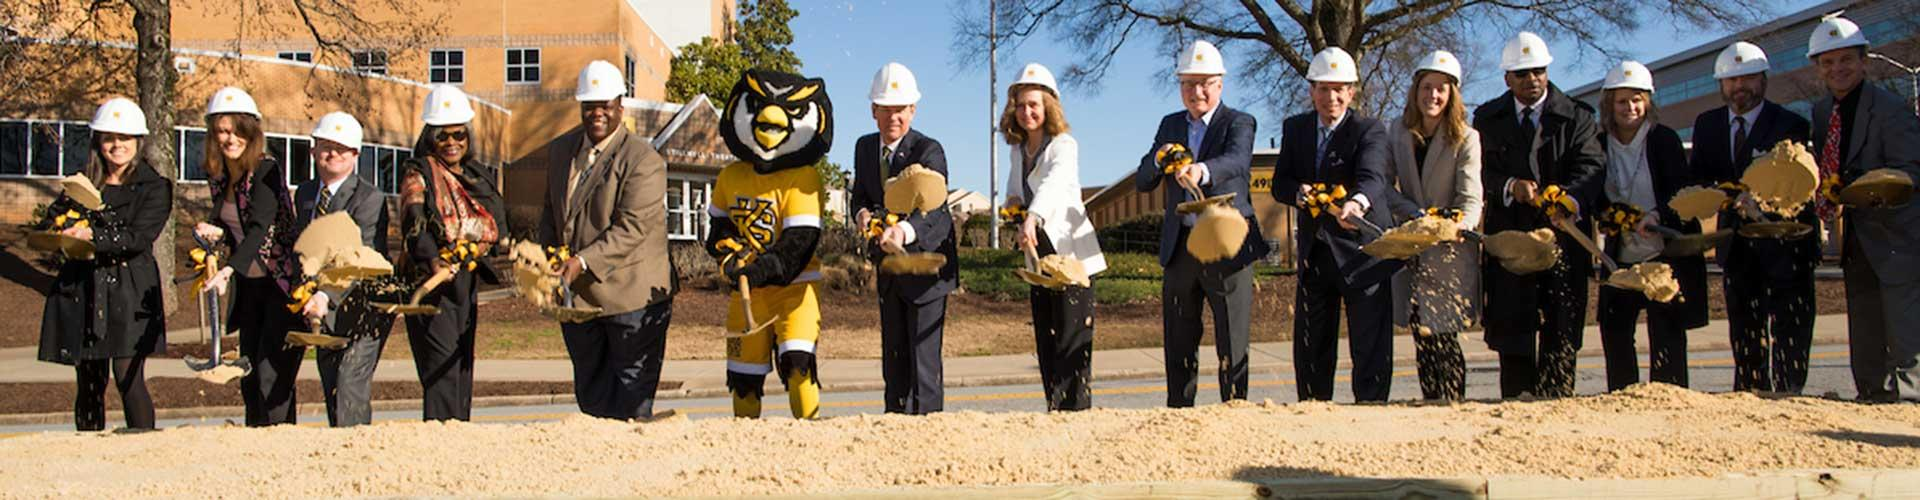 Academic Learning Center Groundbreaking